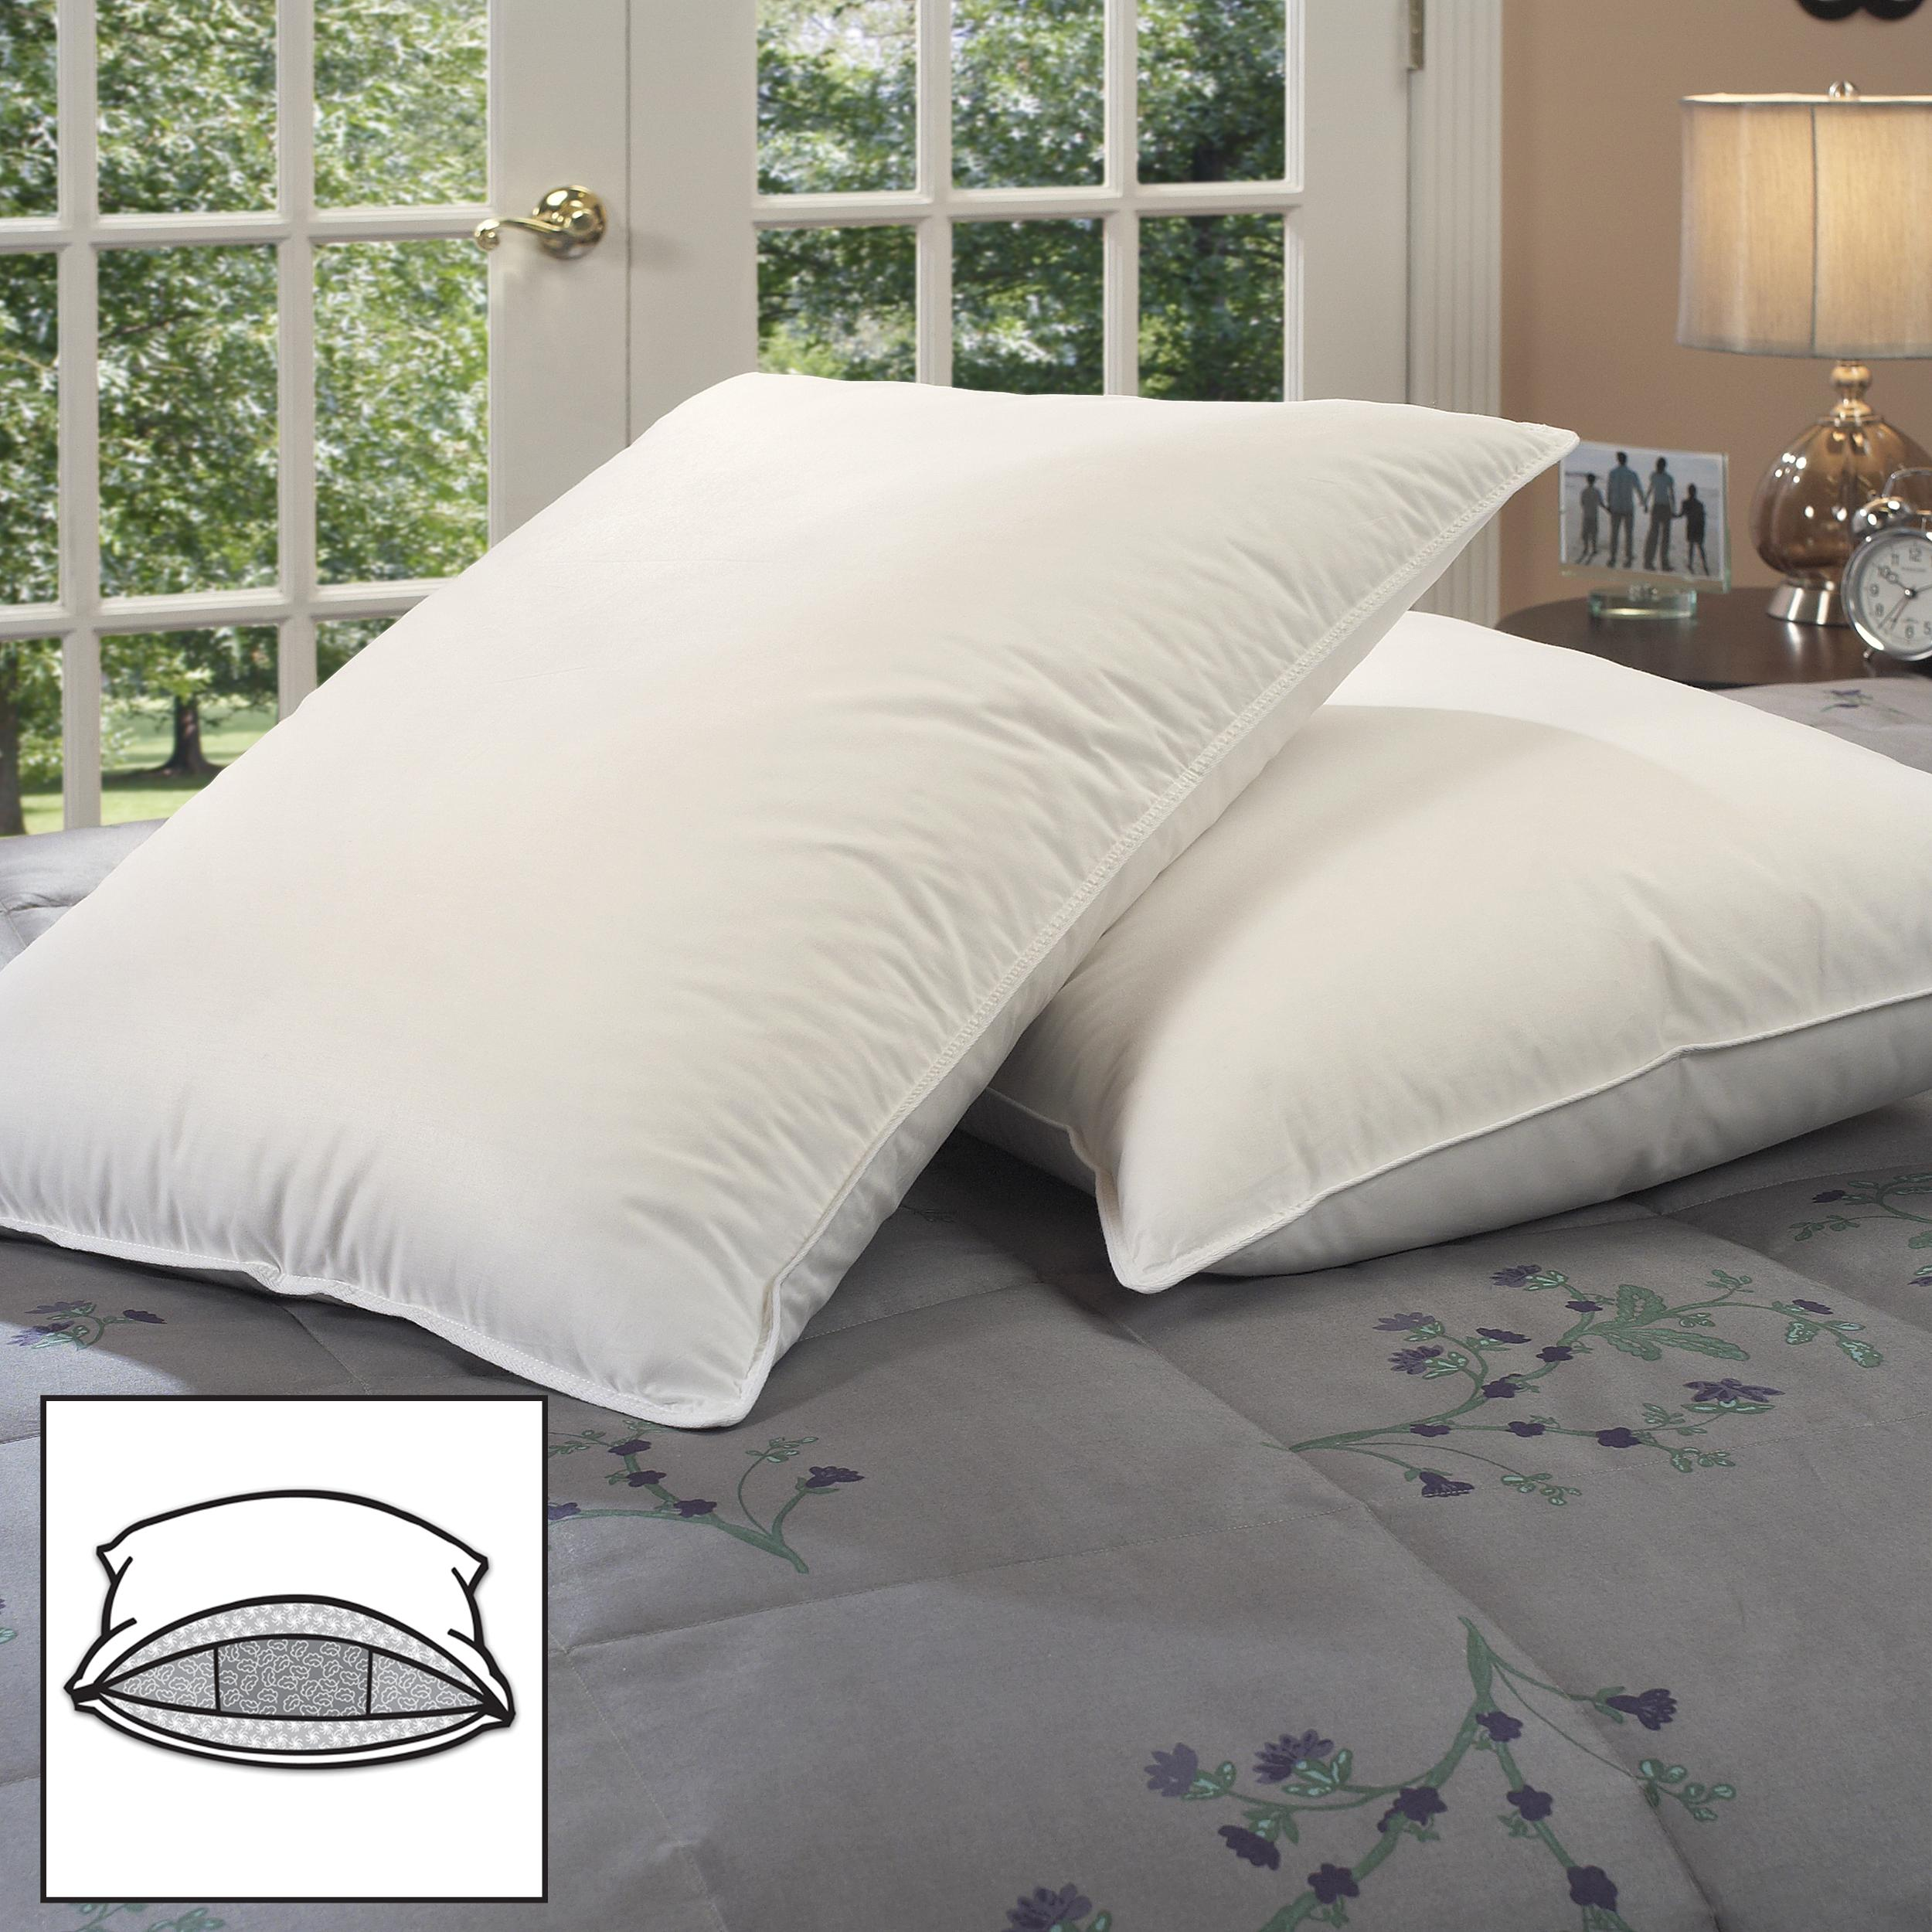 Famous Maker Triple Chamber Pillows (Set of 2)